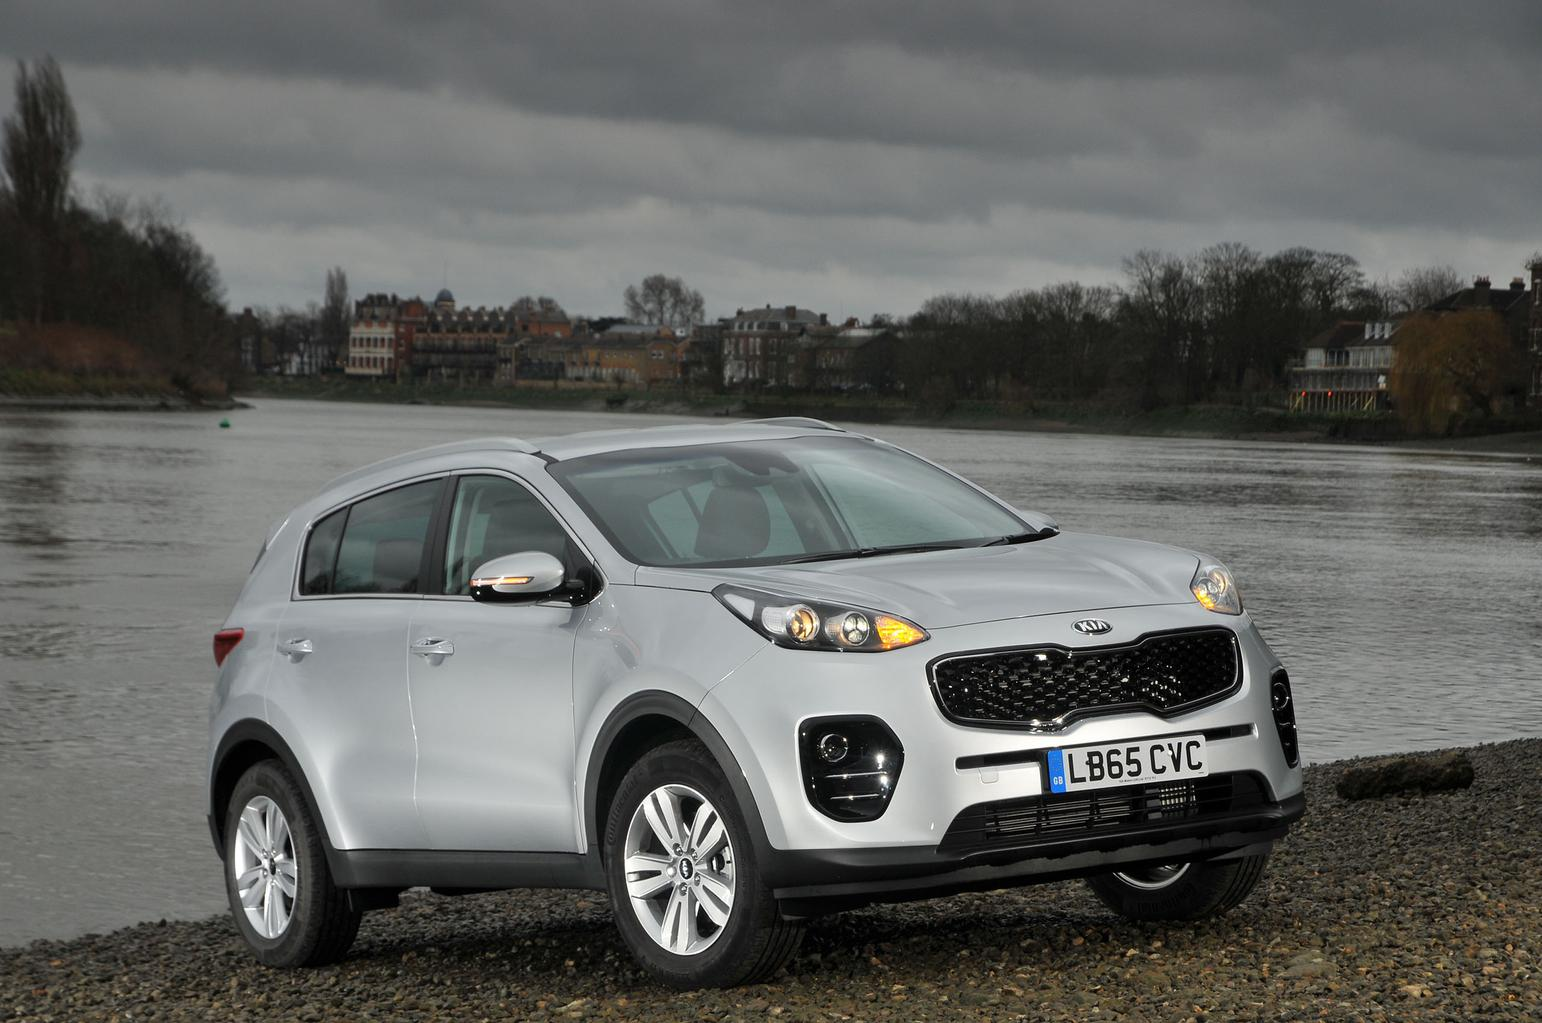 10 reasons to buy a Kia Sportage